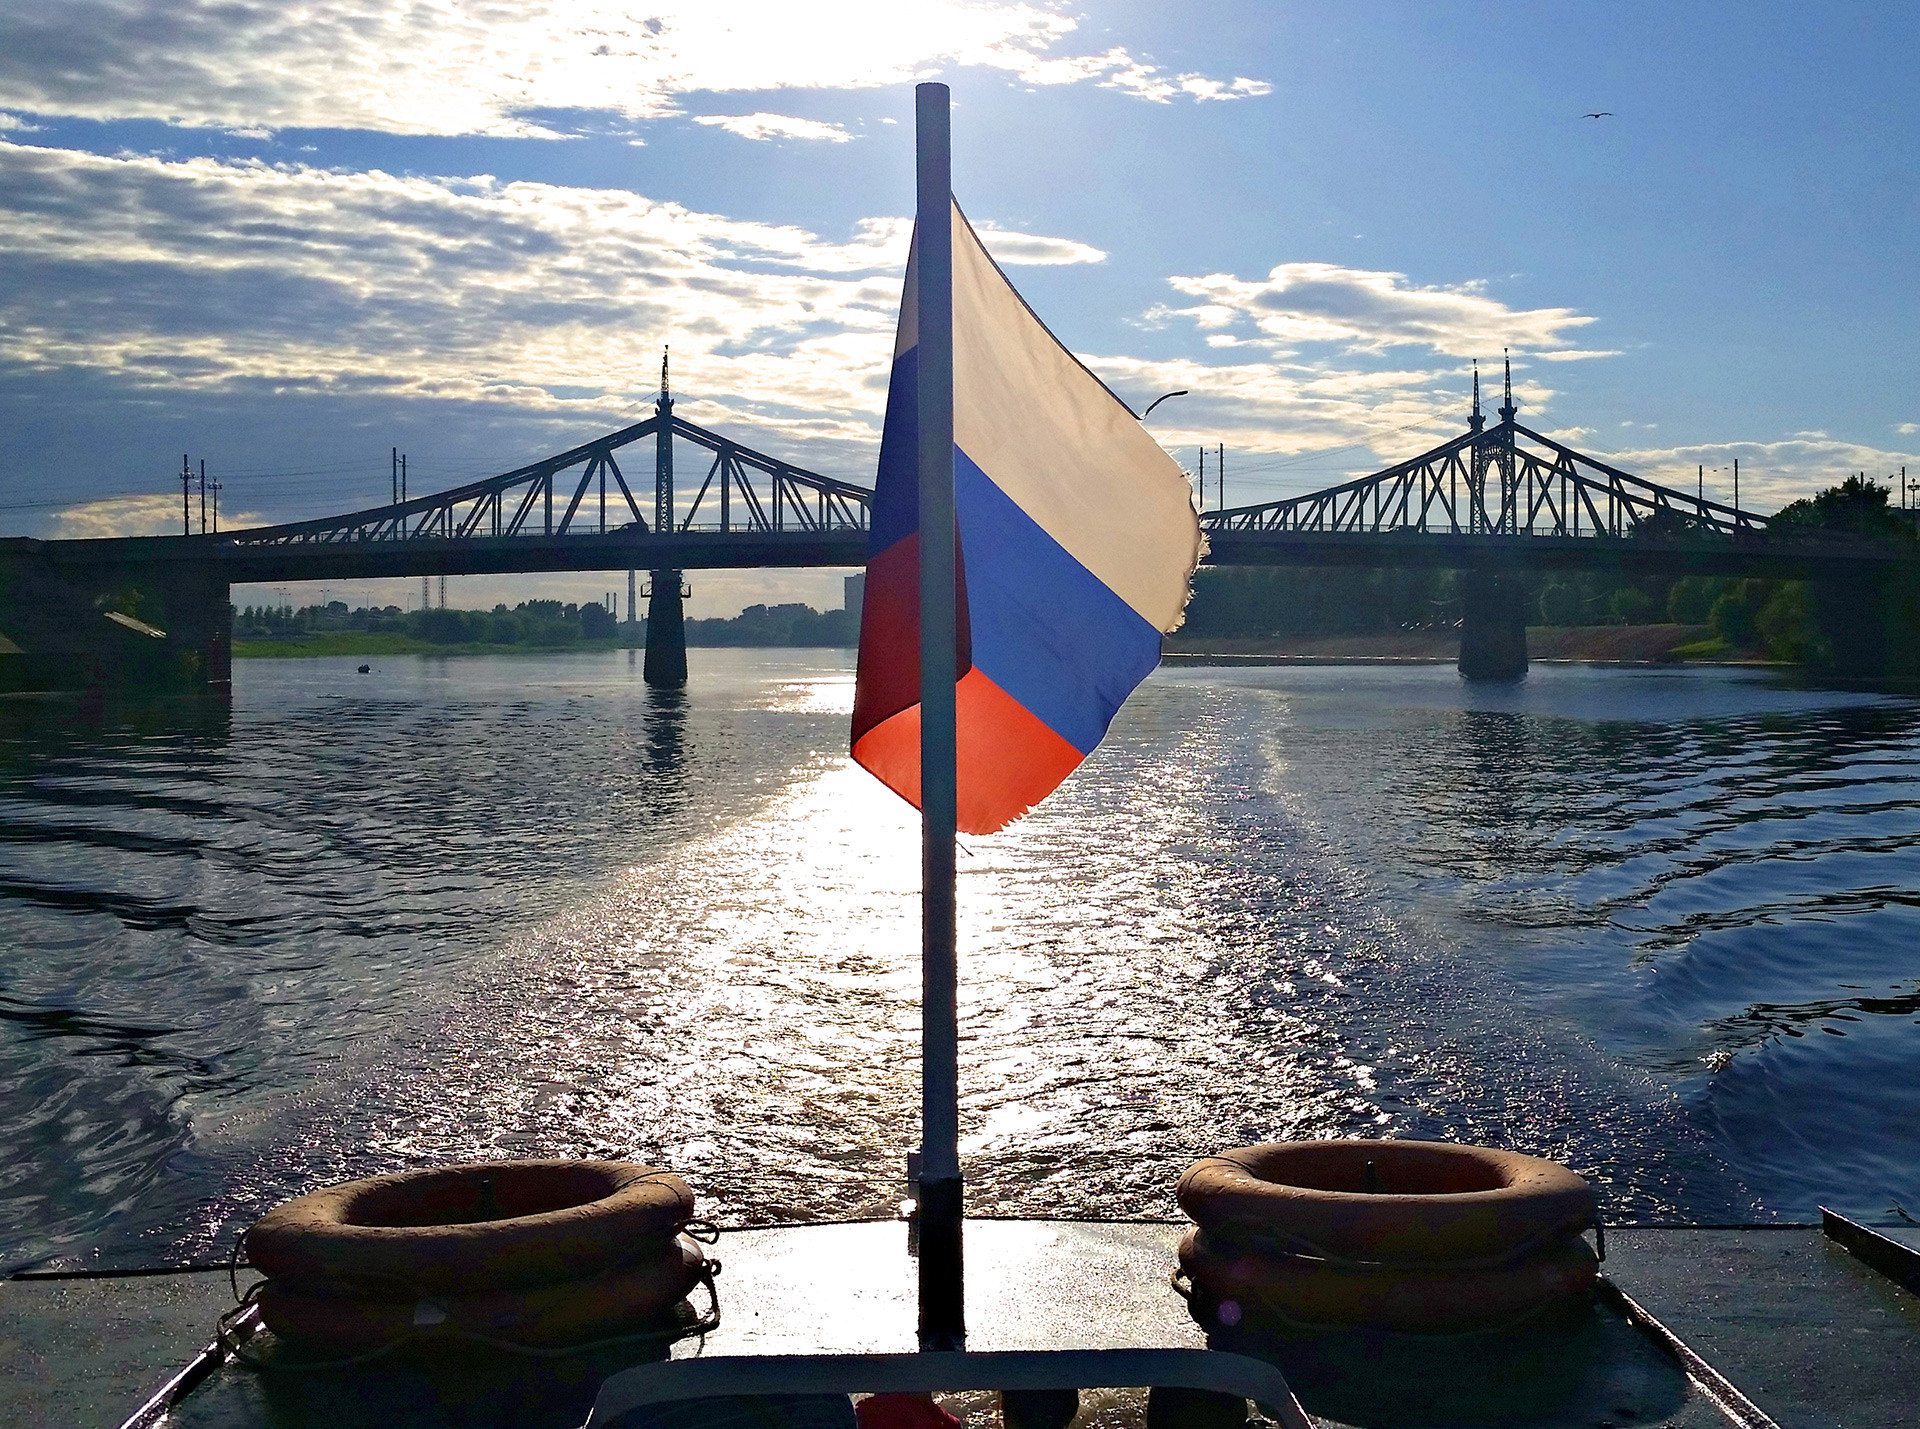 Take a boat tour on the Volga River